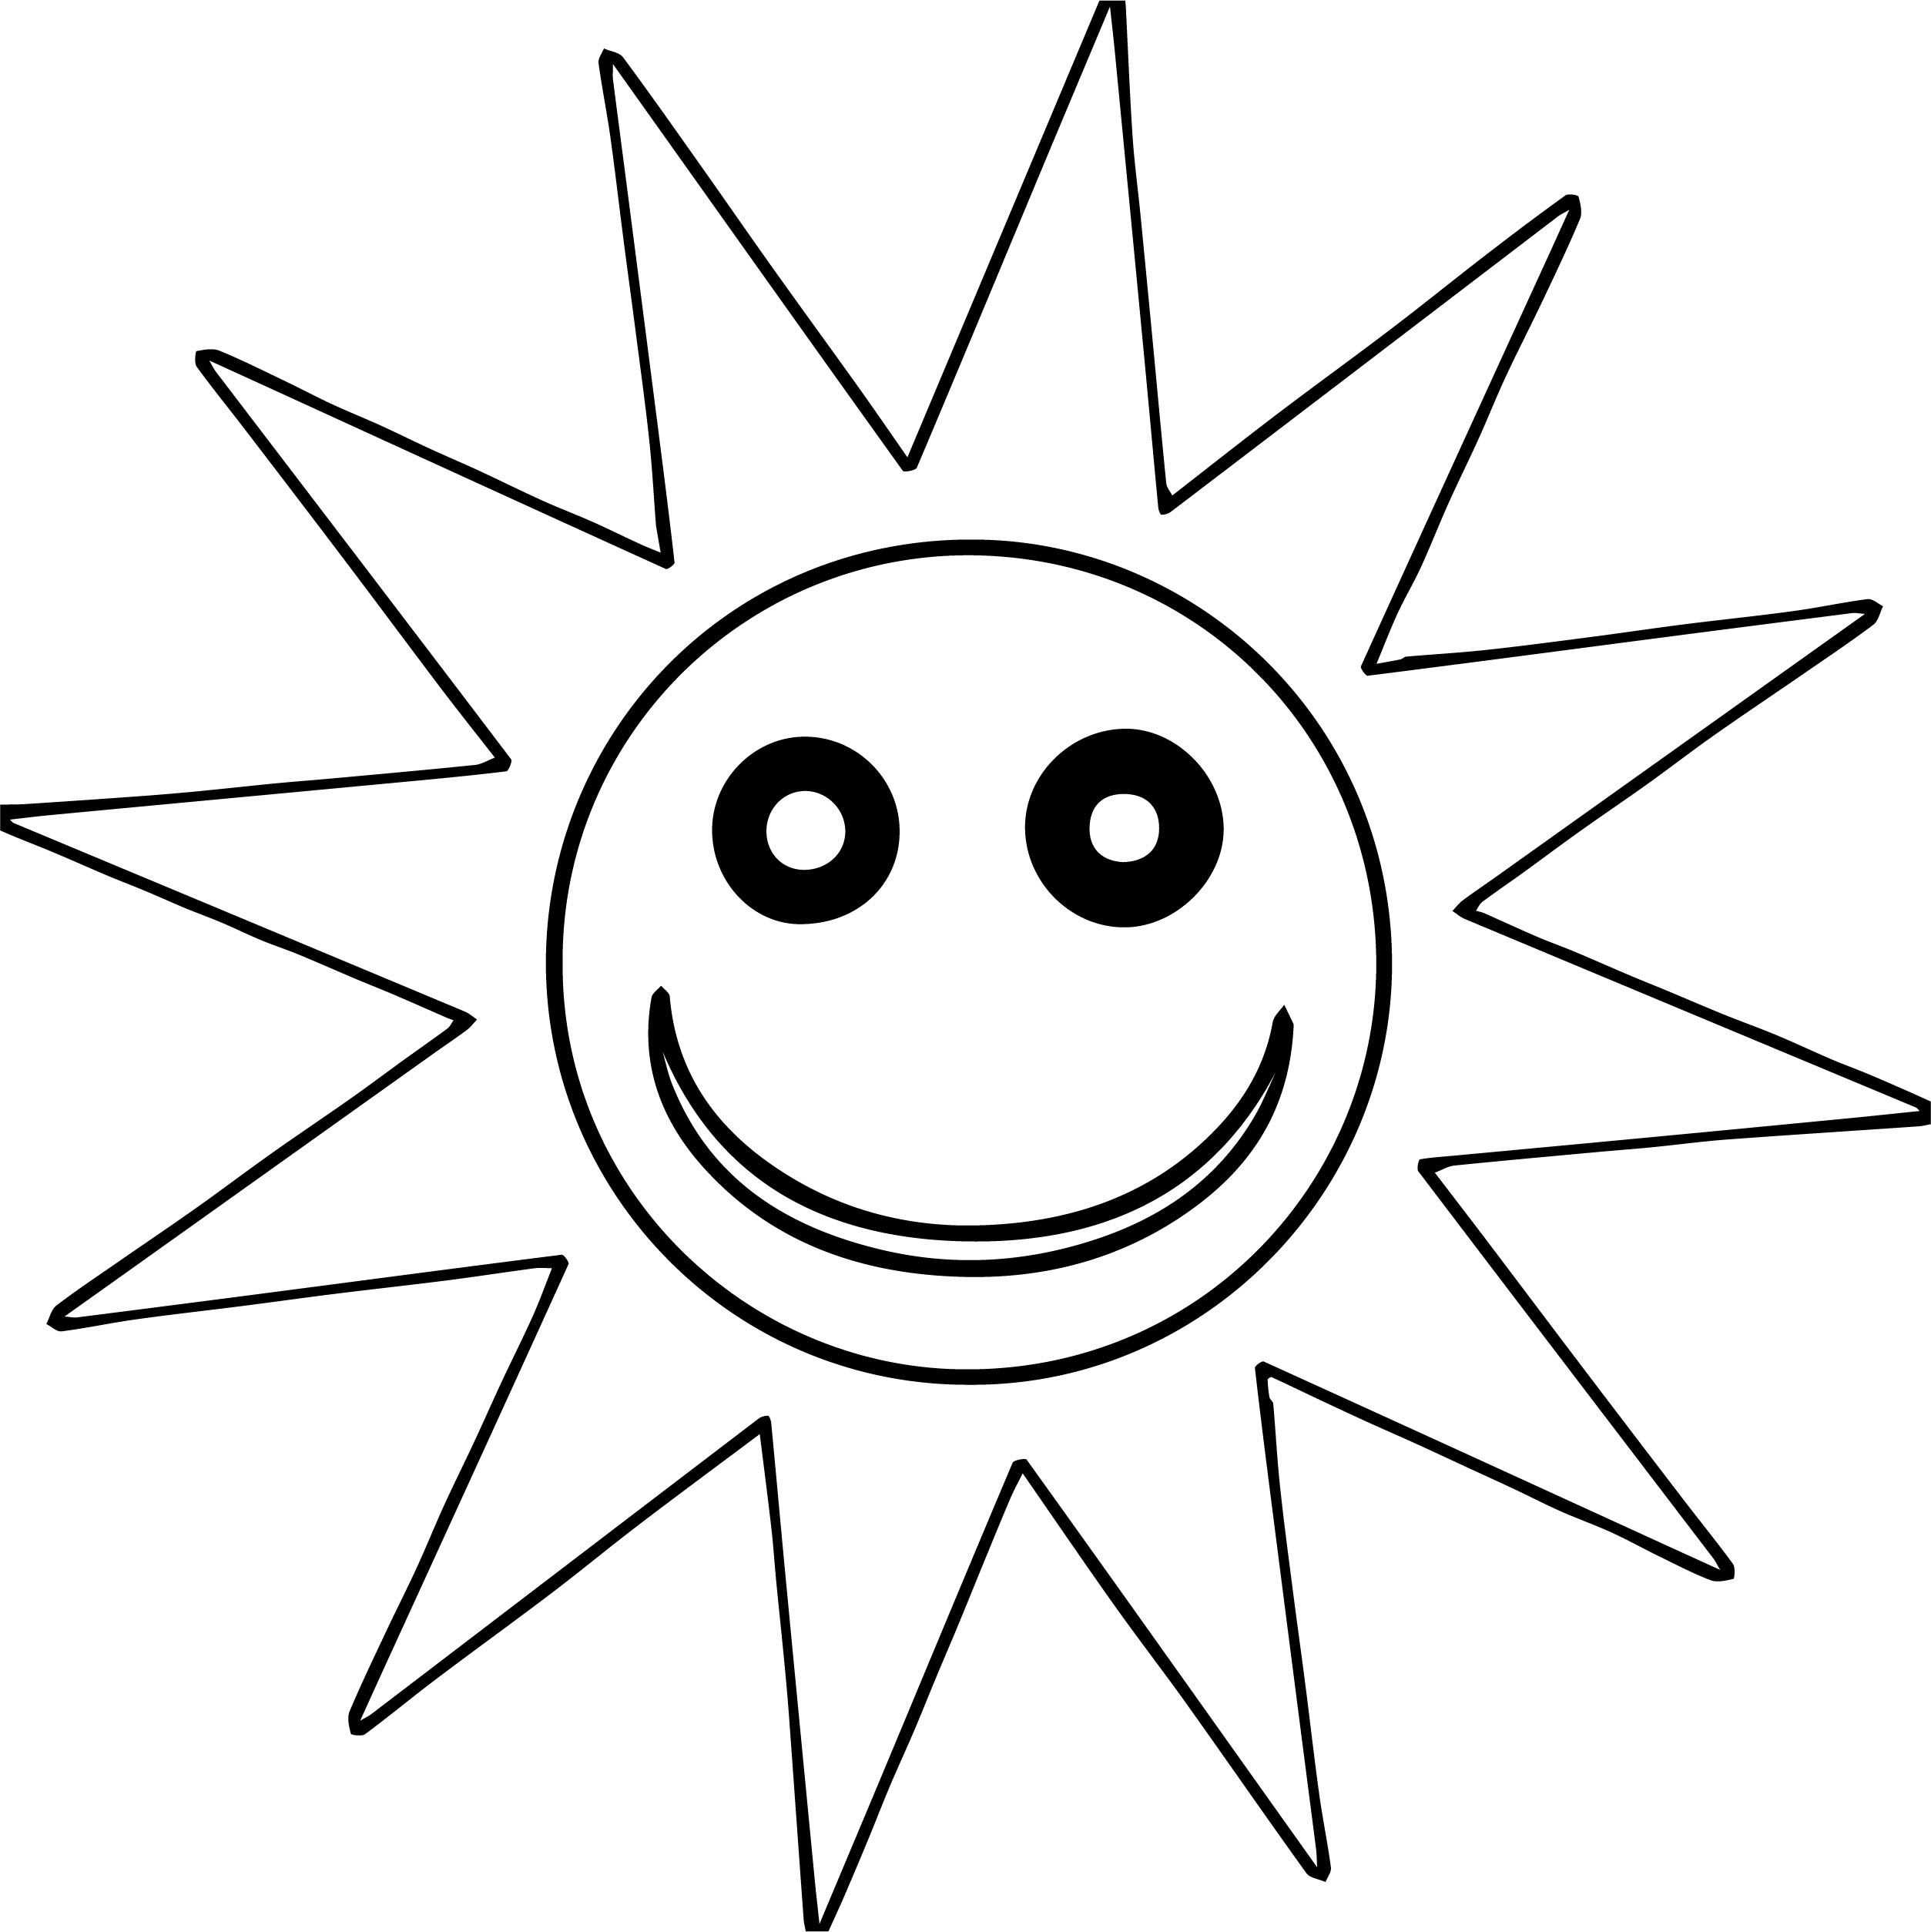 Happy Star We Coloring Page 67